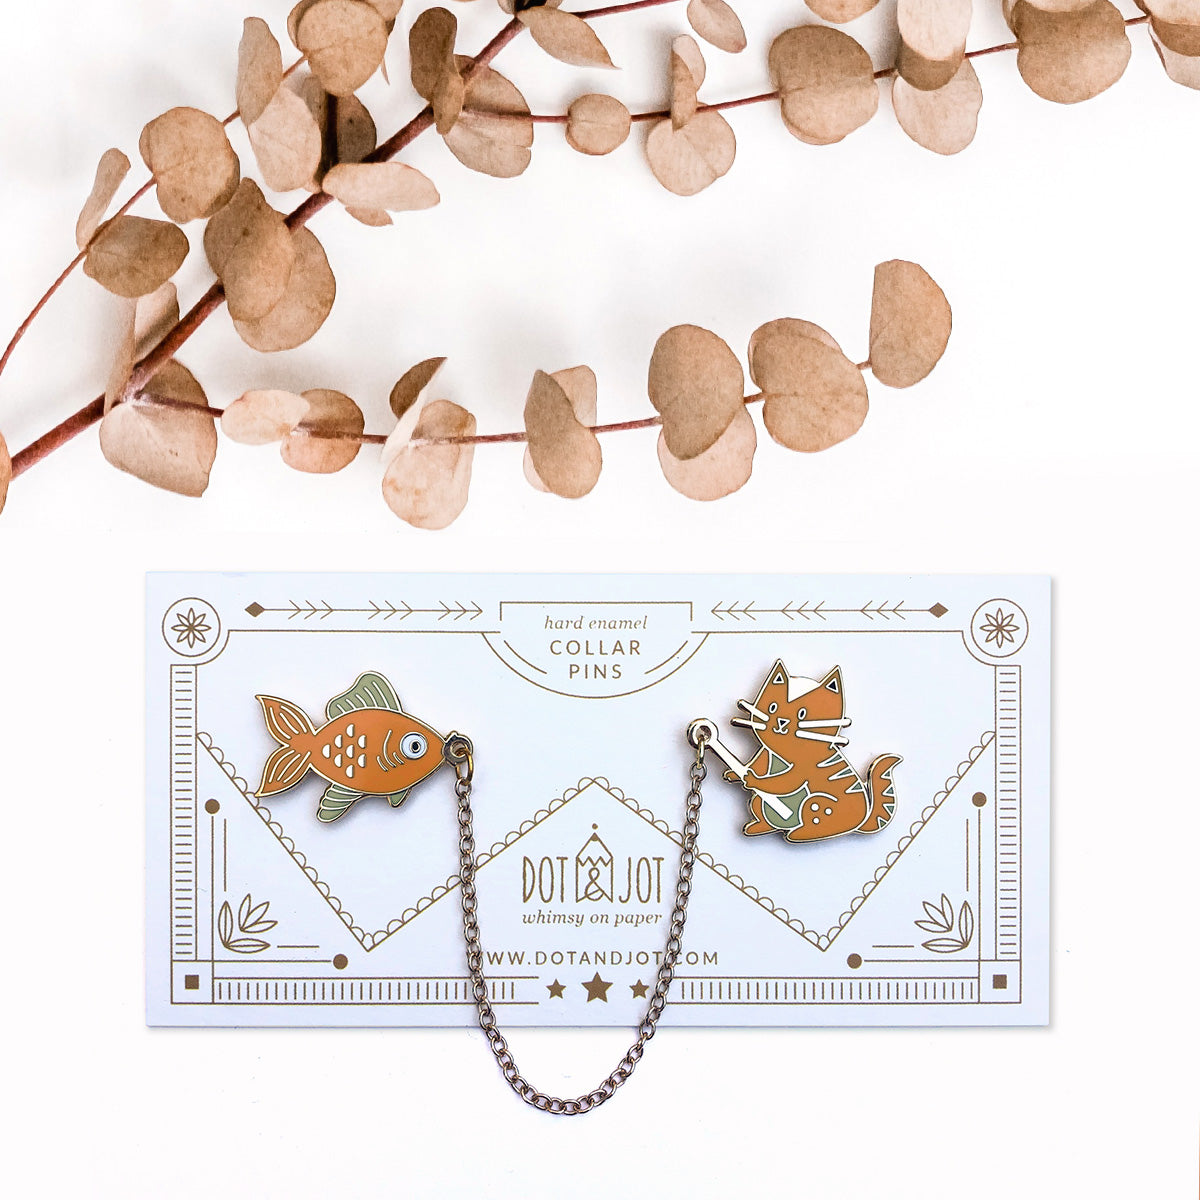 Orange Cat Fish -  Collar Pins